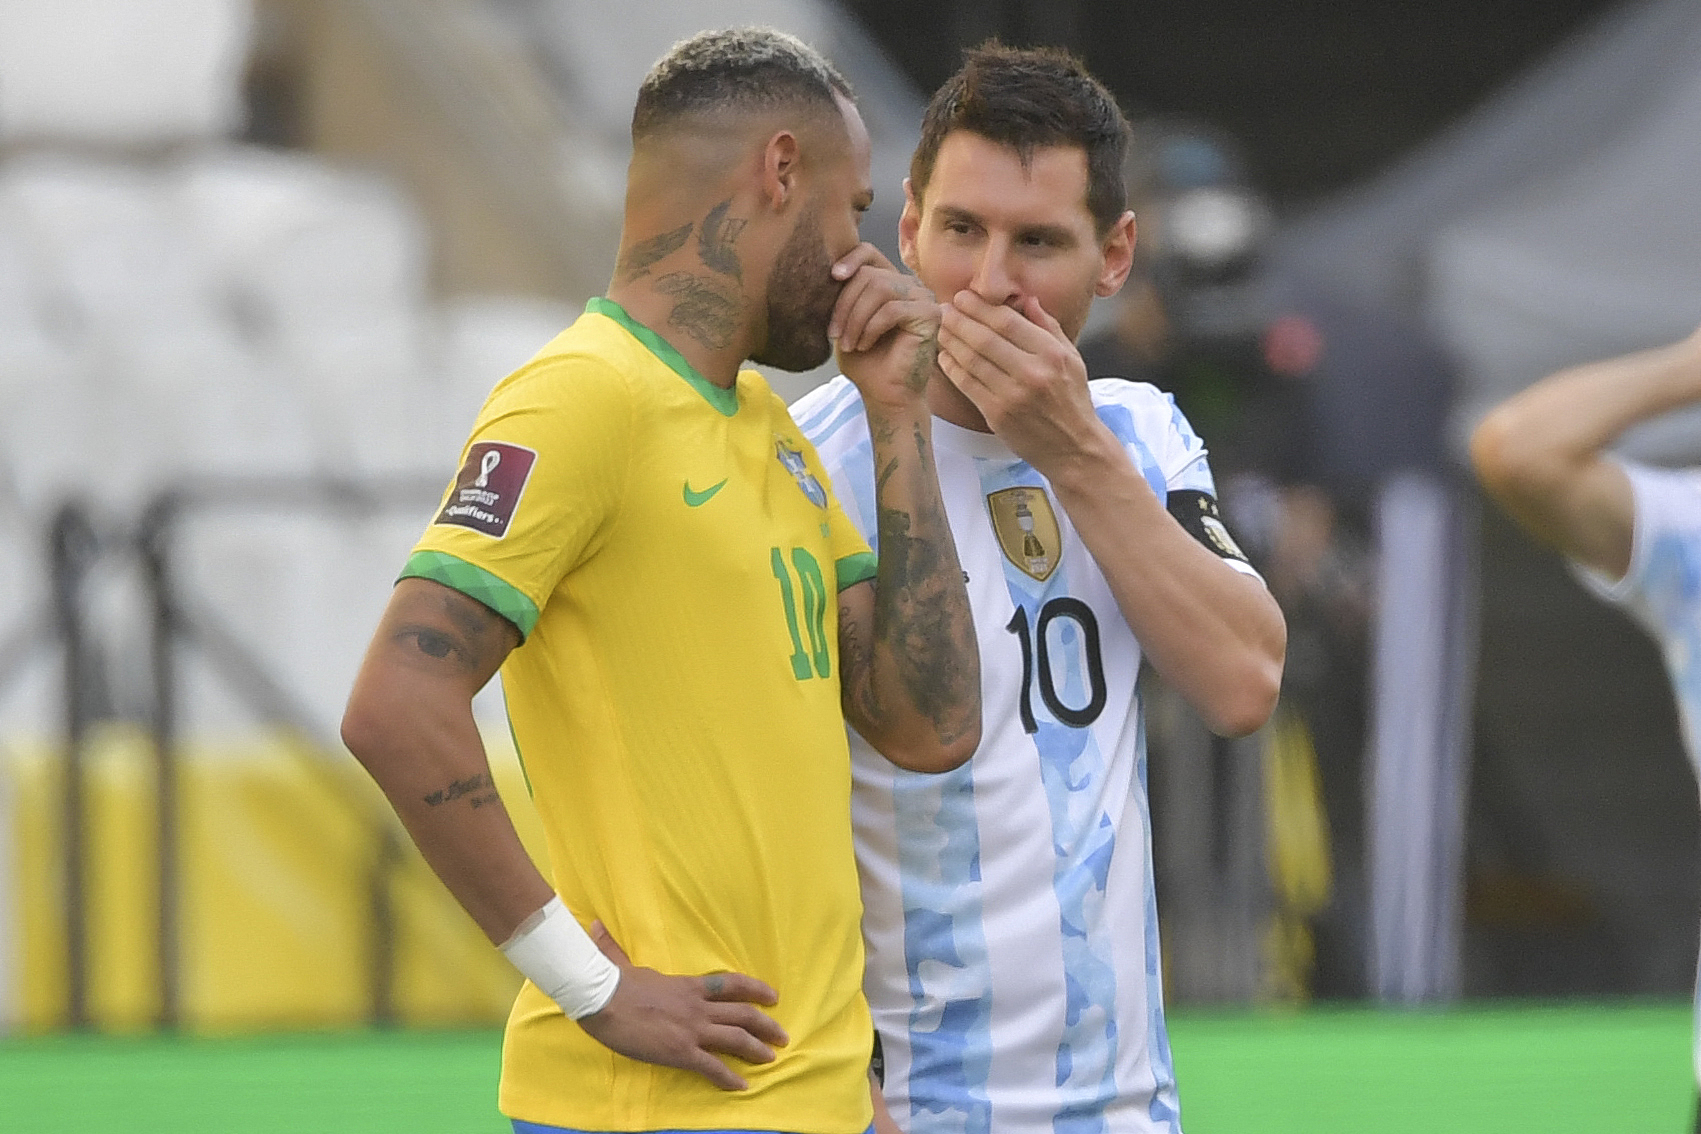 FIFA vows disciplinary action after Brazil-Argentina match suspension